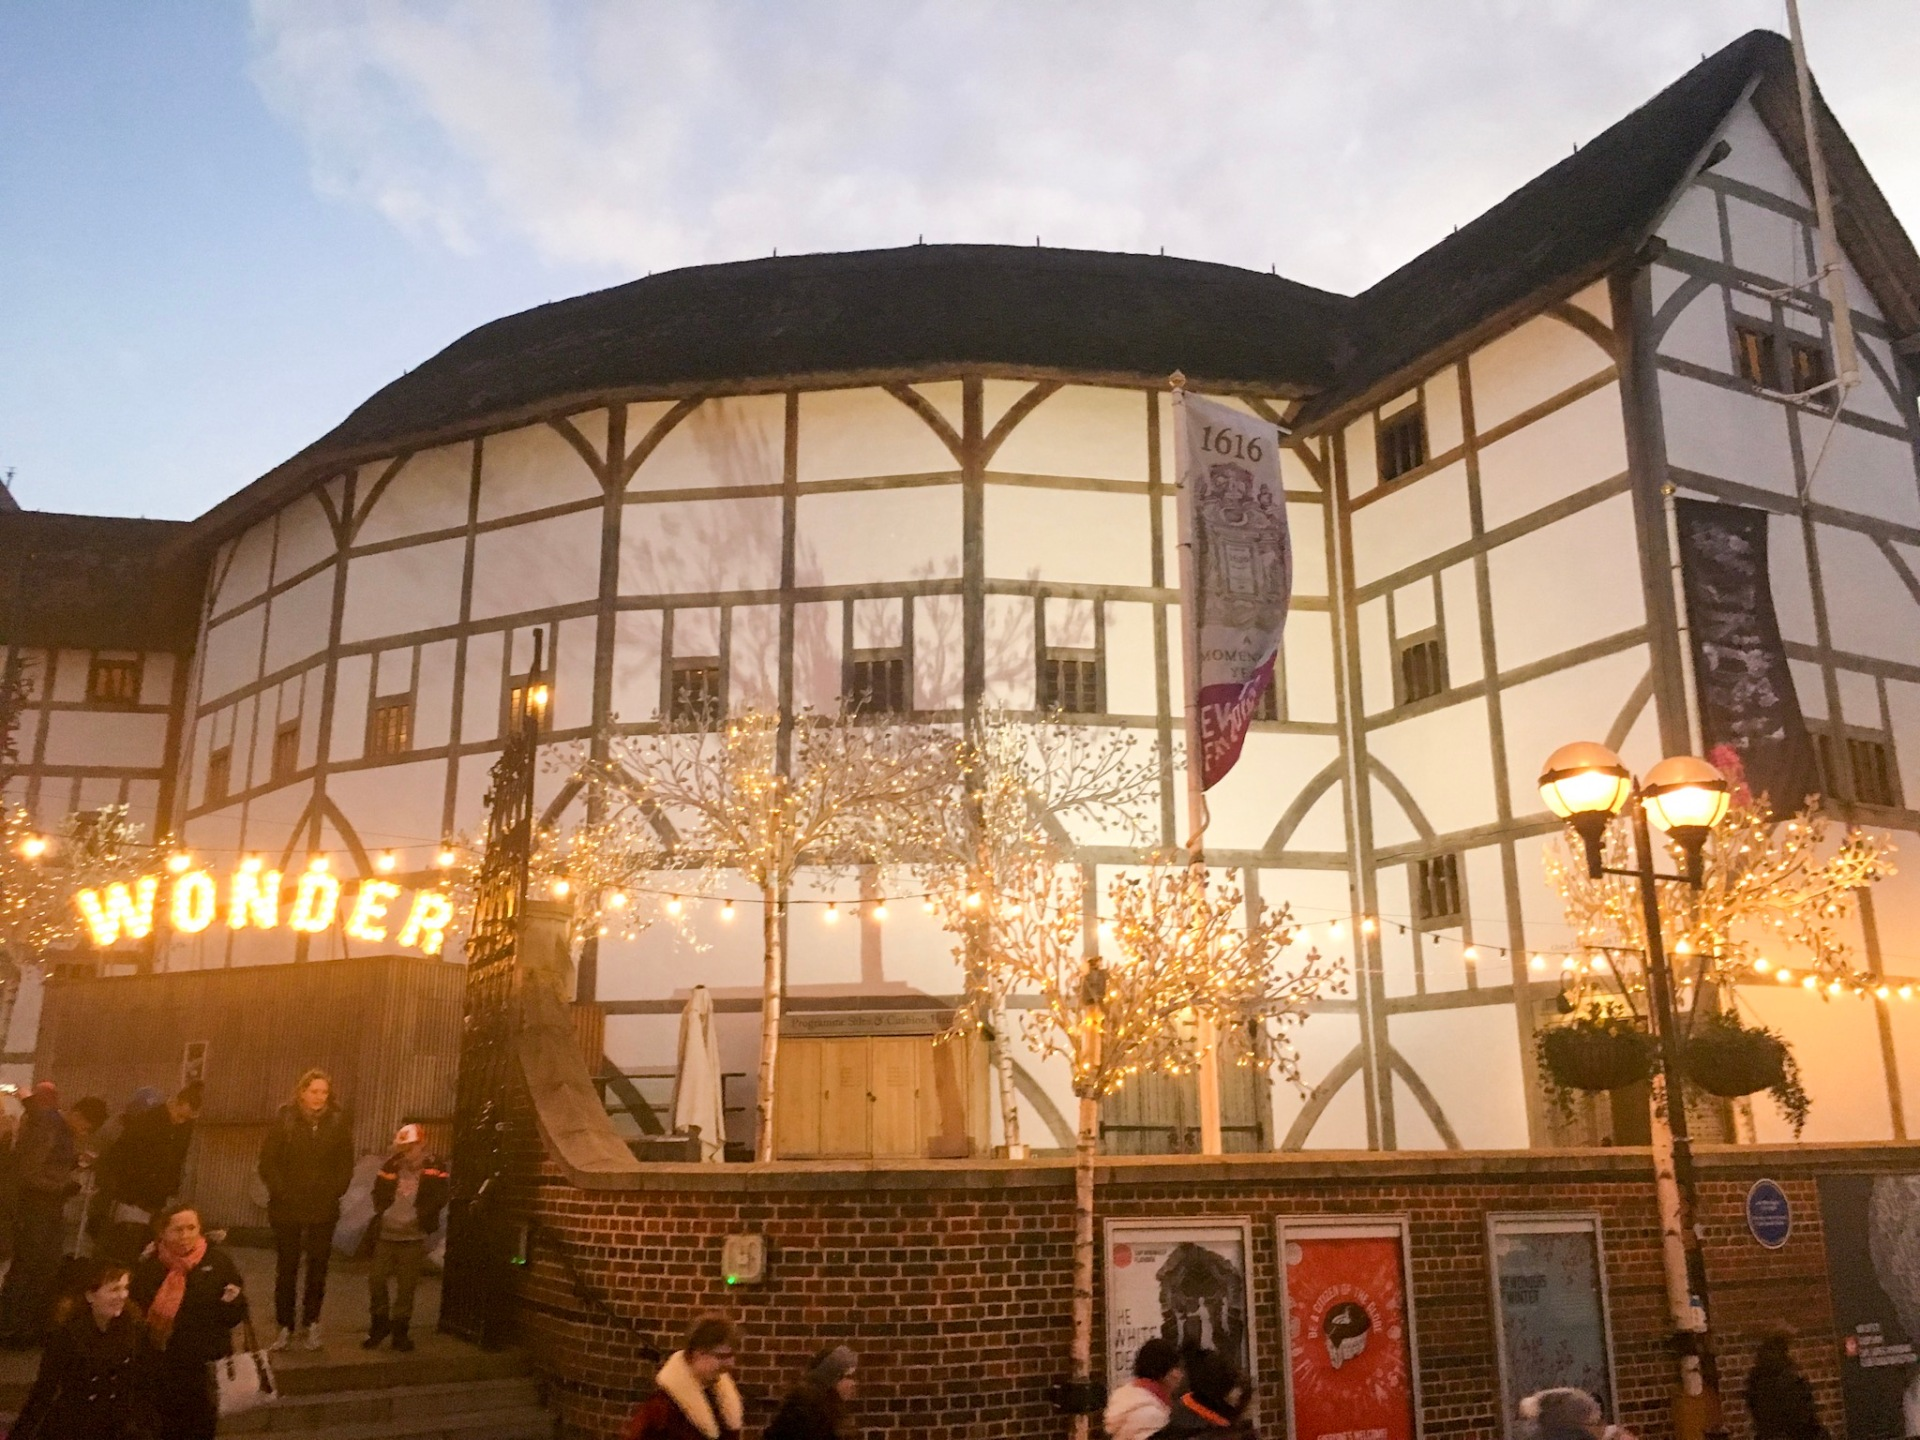 Shakespeare's Globe during winter